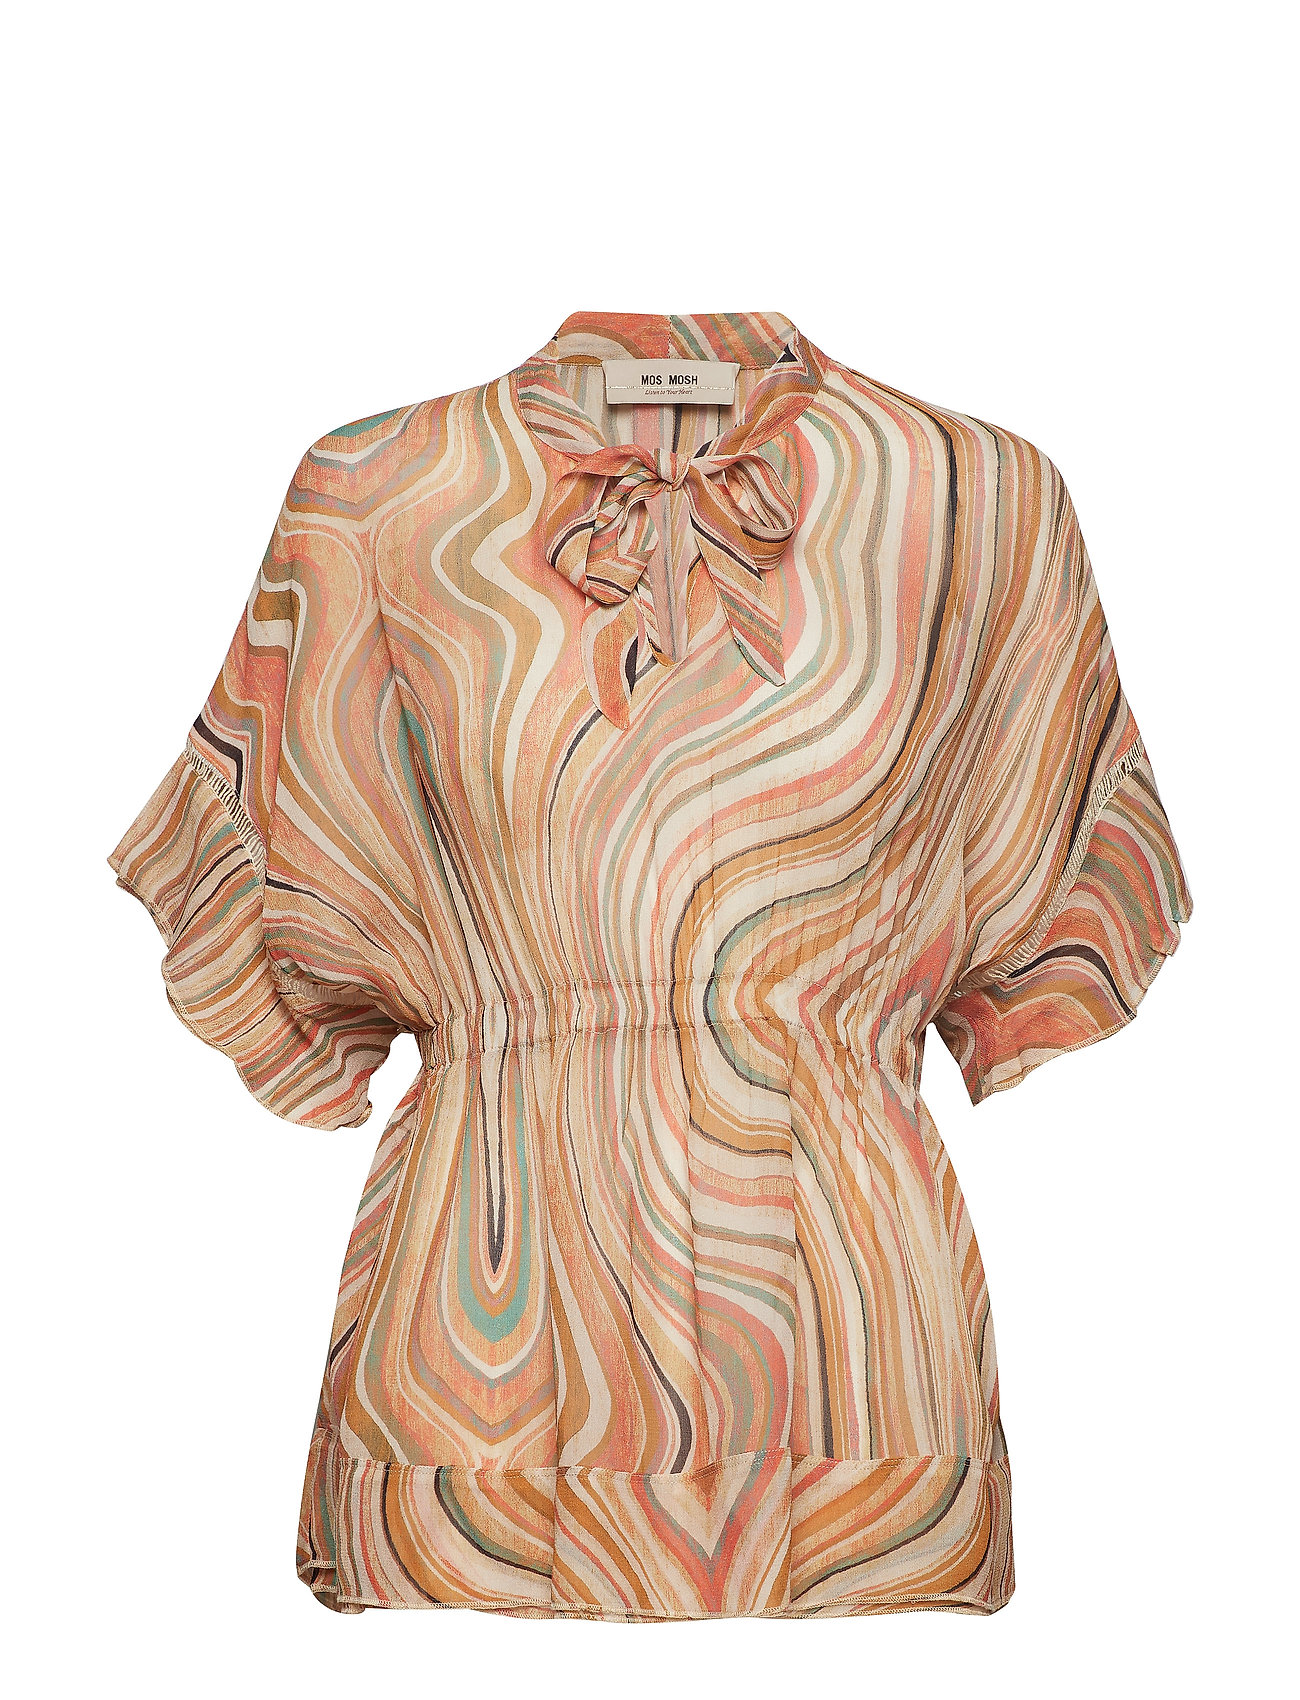 MOS MOSH Nexa Swirl Blouse - SUN ORANGE PRINTED